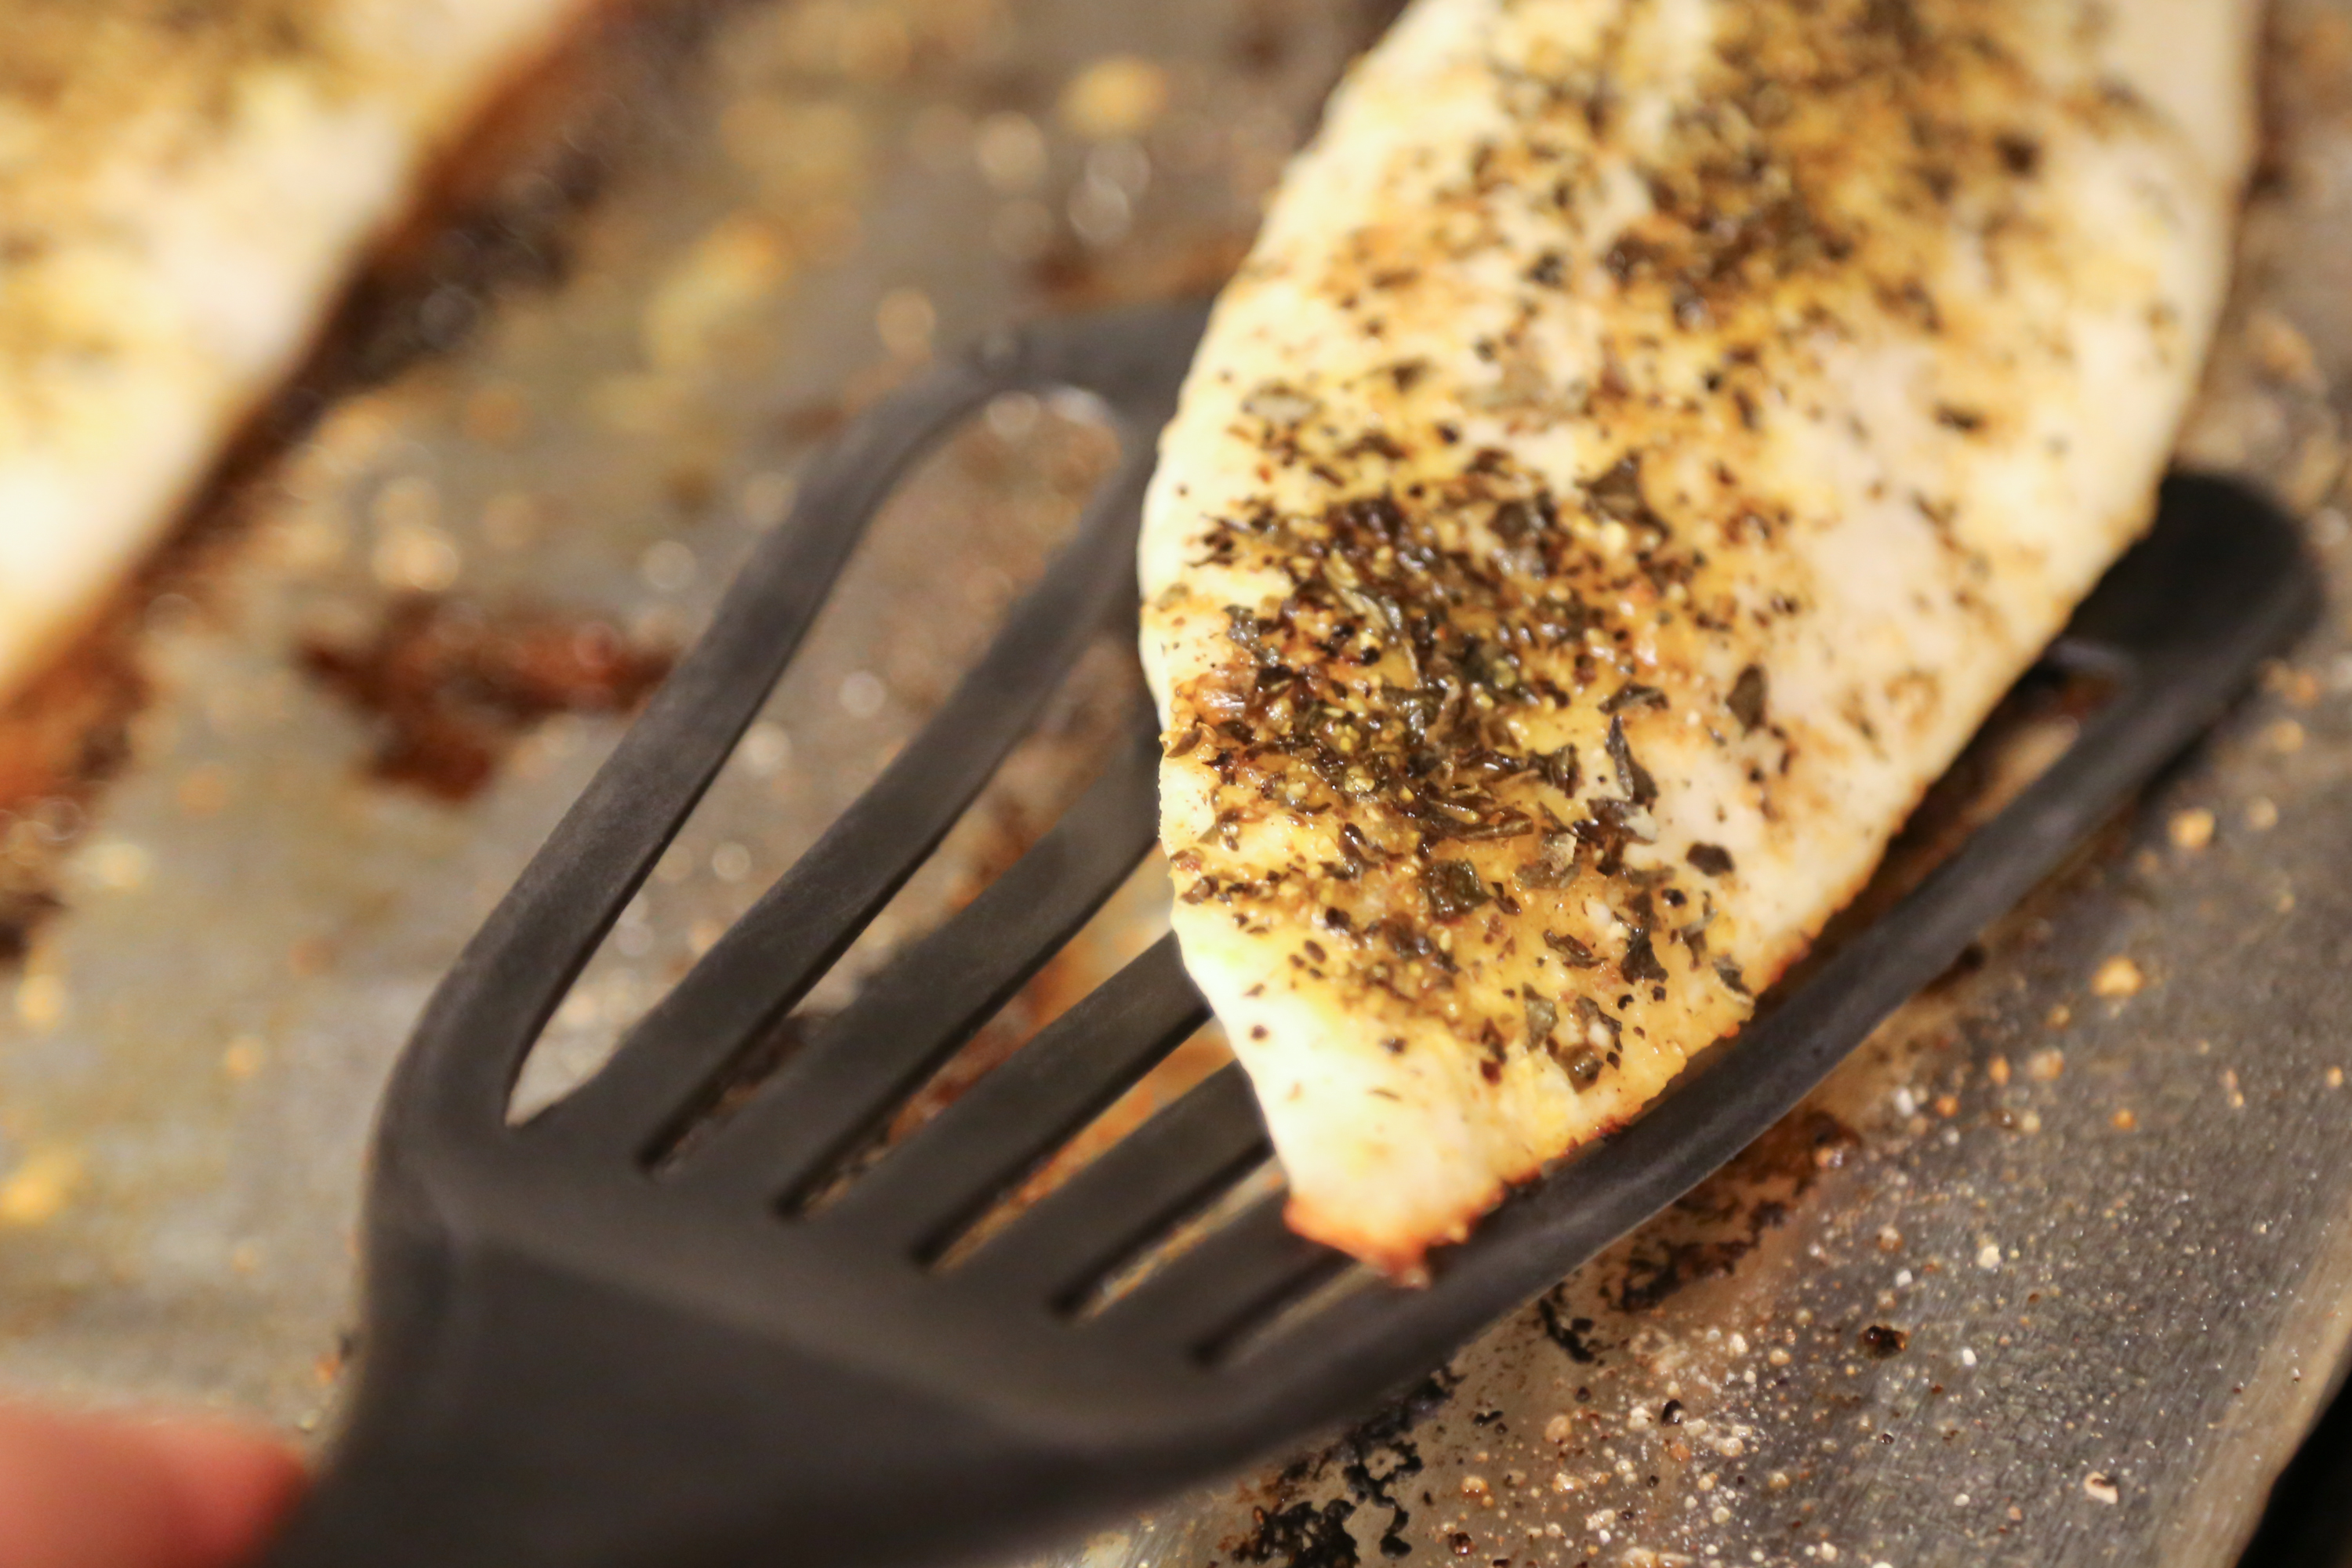 How to cook tilapia fillets in the oven livestrong com for Temperature to cook fish in oven